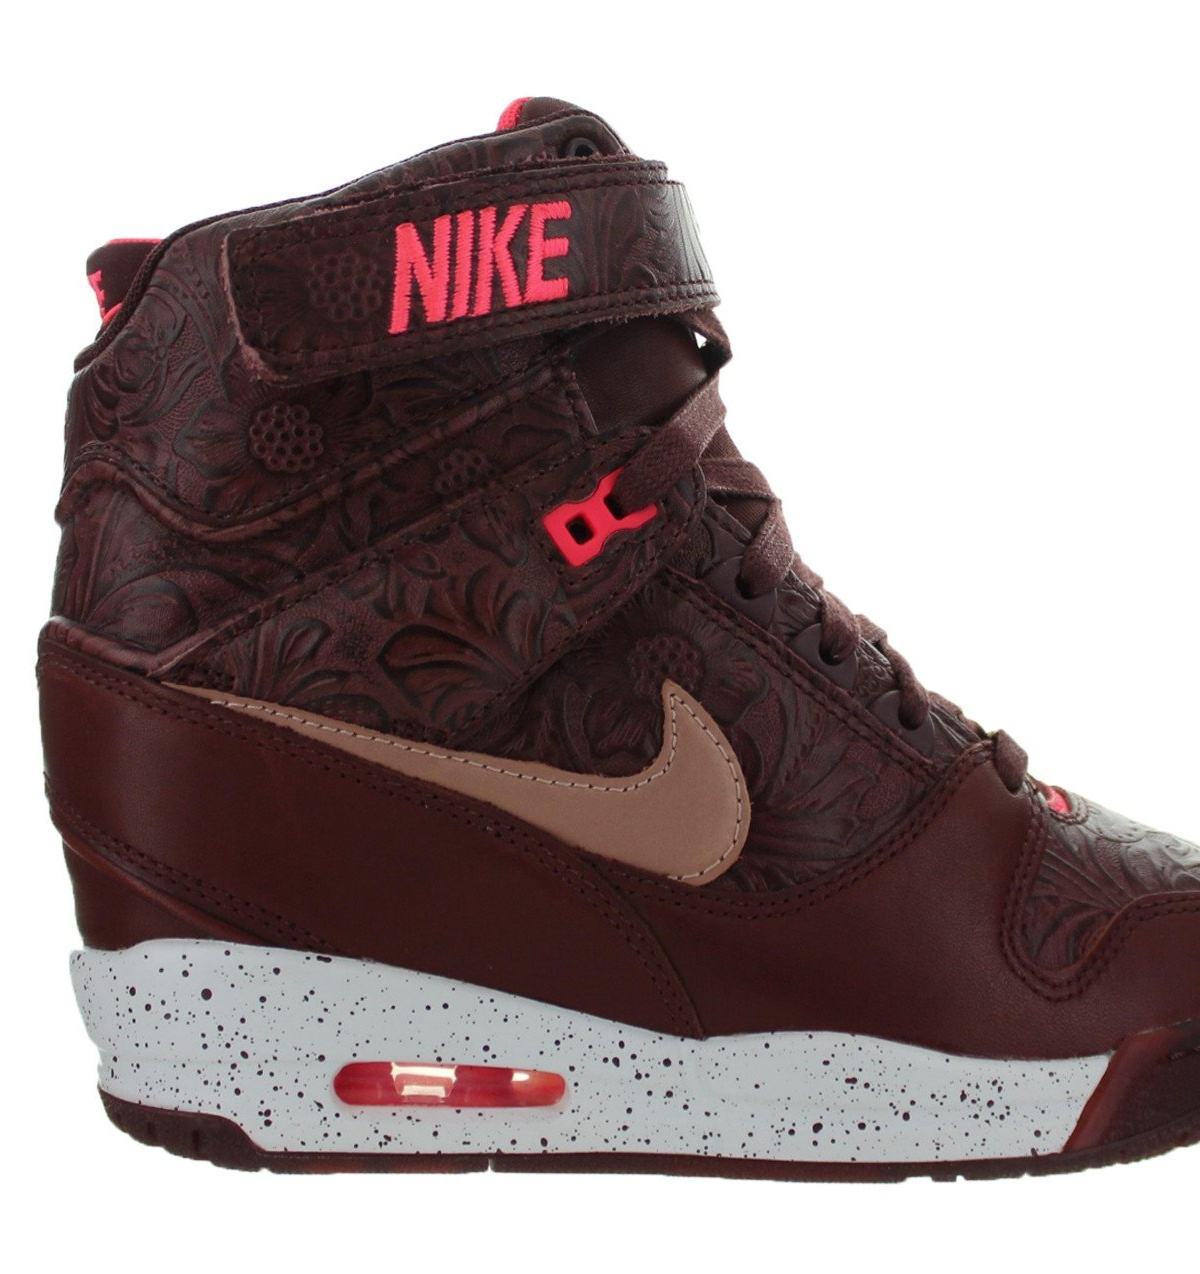 separation shoes 2dcc5 7c7ca norway womens nike air revolution sky high fw qs milan italy barkroot brown  m 6f2ca 97737